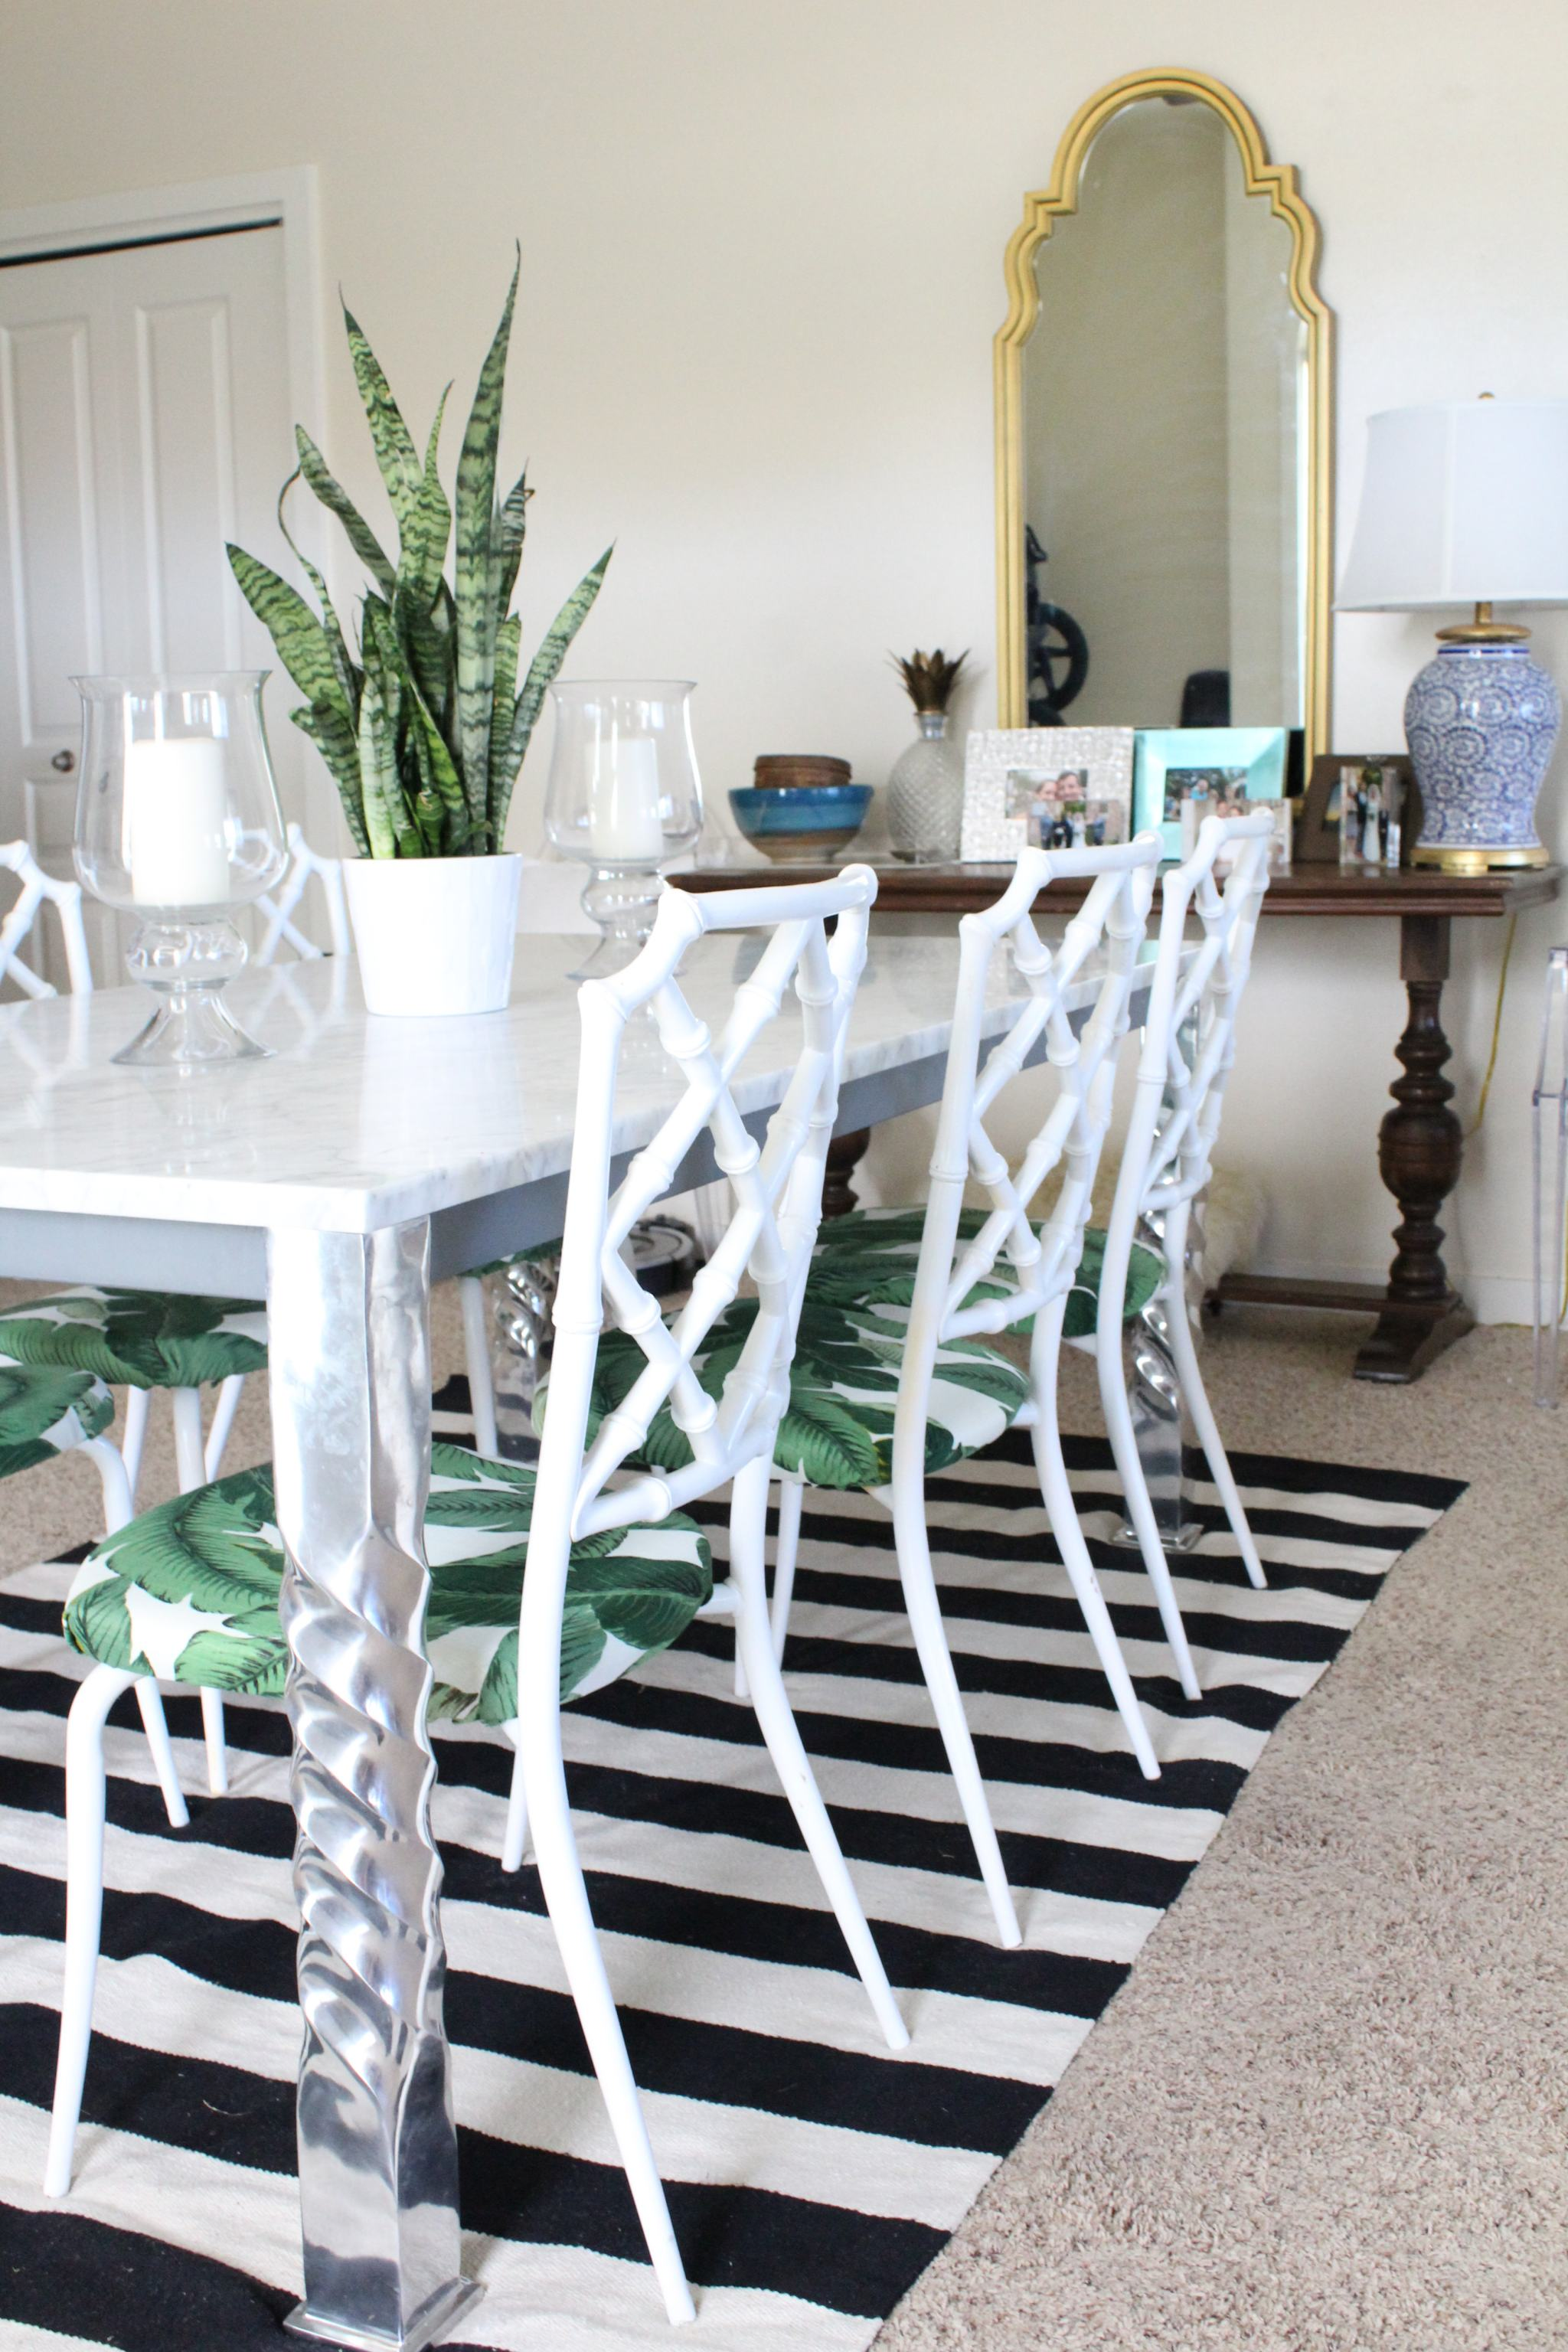 marble dining table - palm leaf fabric - faux bamboo dining chairs - striped rug - queen anne mirror